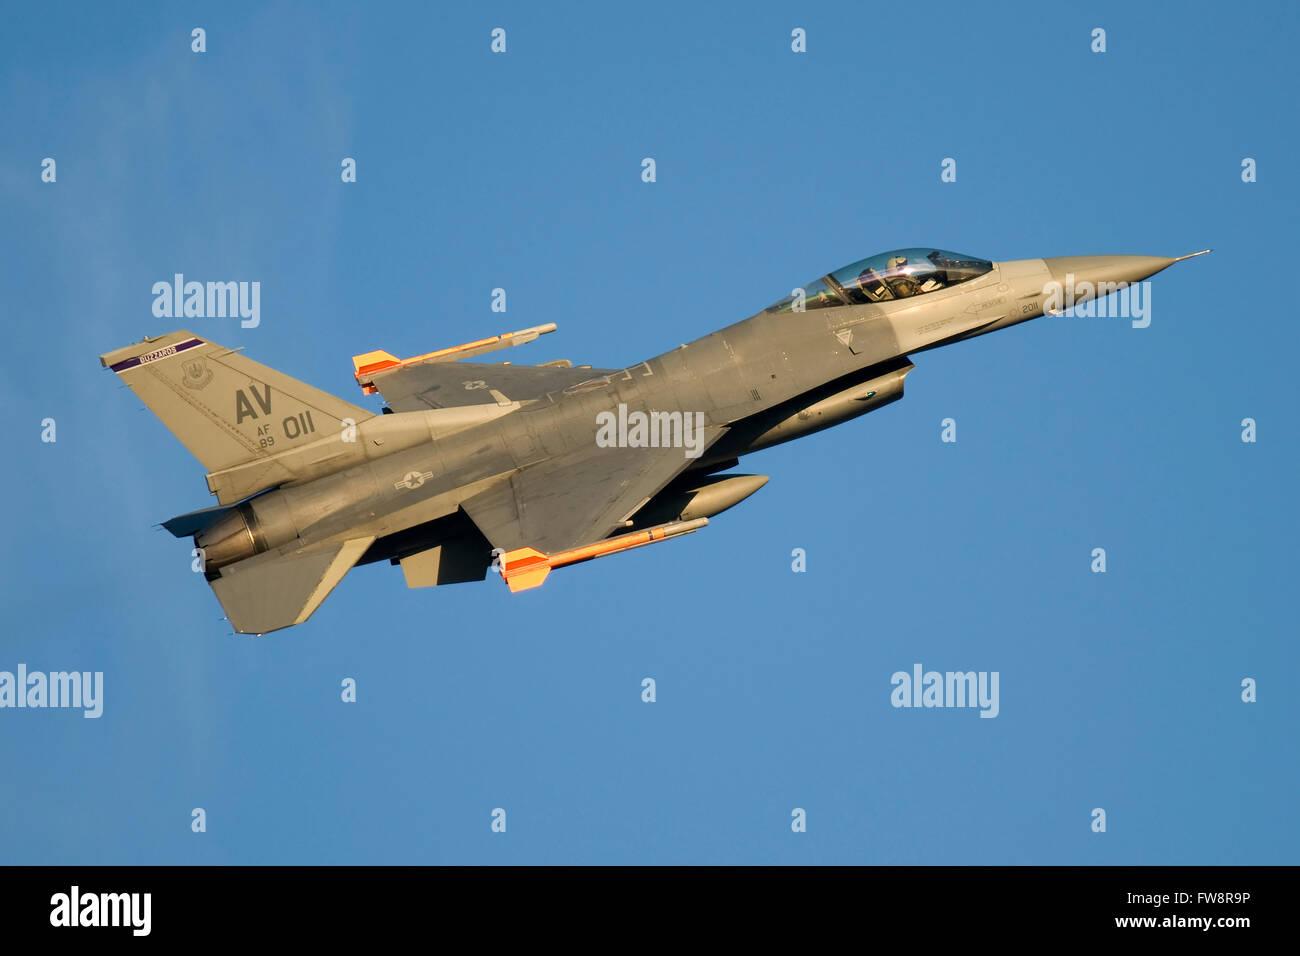 A U.S. Air Force F-16C Fighting Falcon taking off from Aviano Air Force Base, Italy. - Stock Image